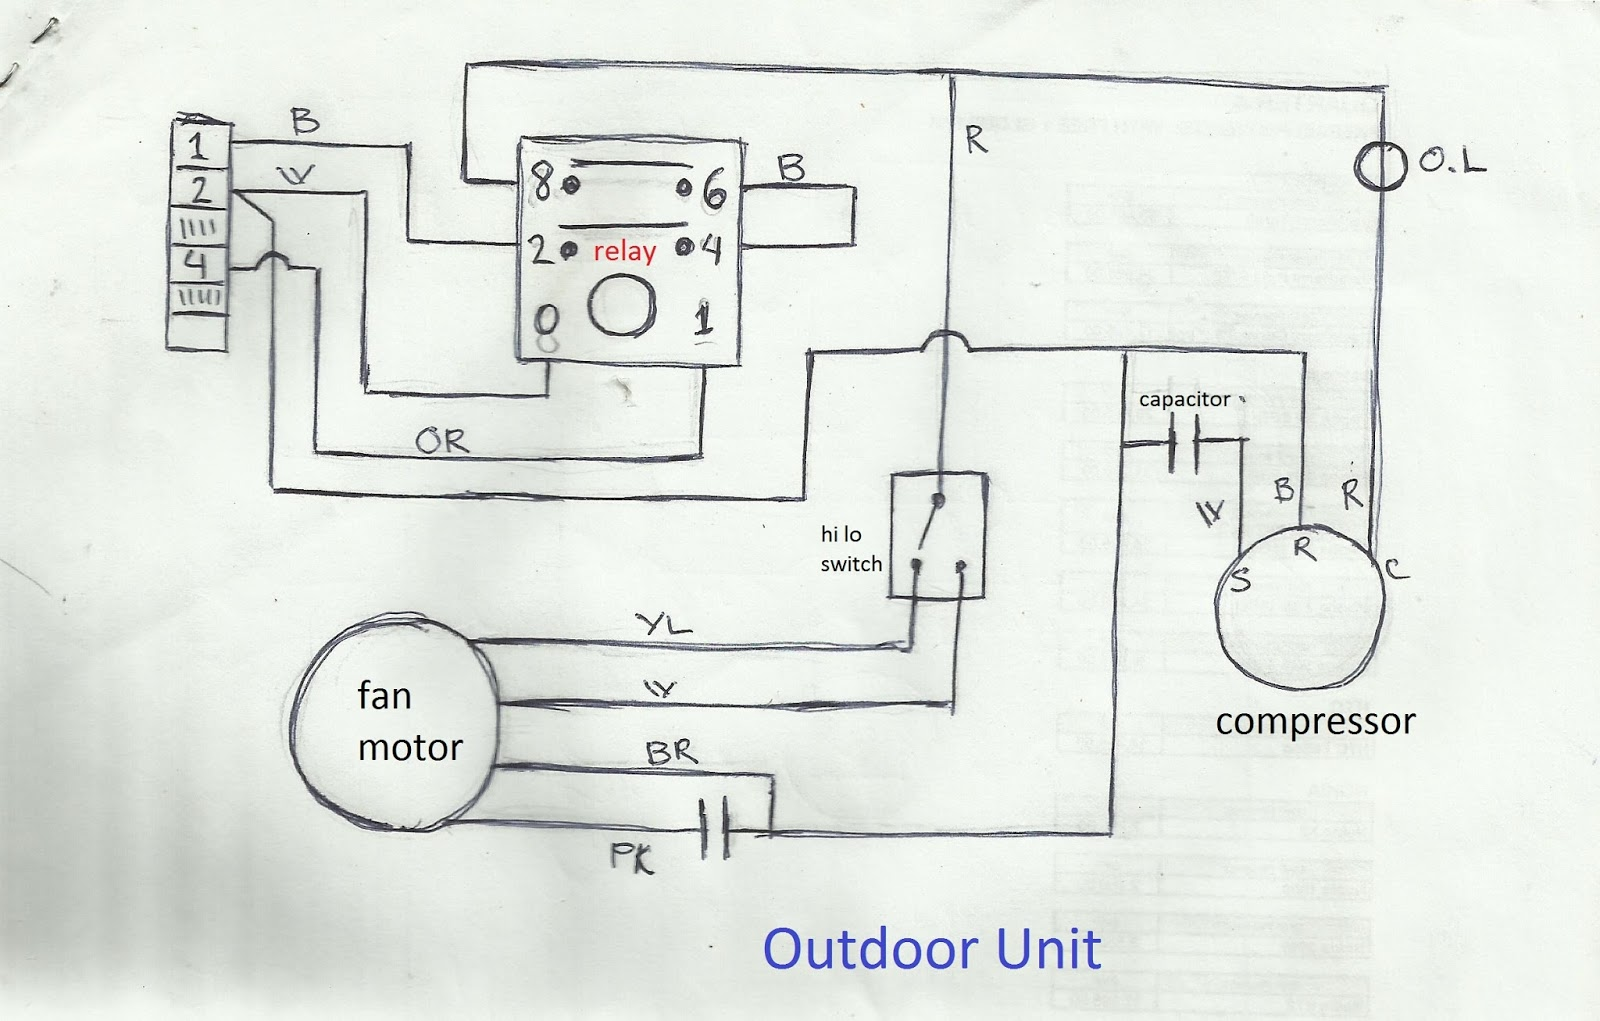 Air Conditioner Fan Wiring Diagram Library Ac Motor Capacitor Condenser Schematic Reveolution Of U2022 Rh Jivehype Co